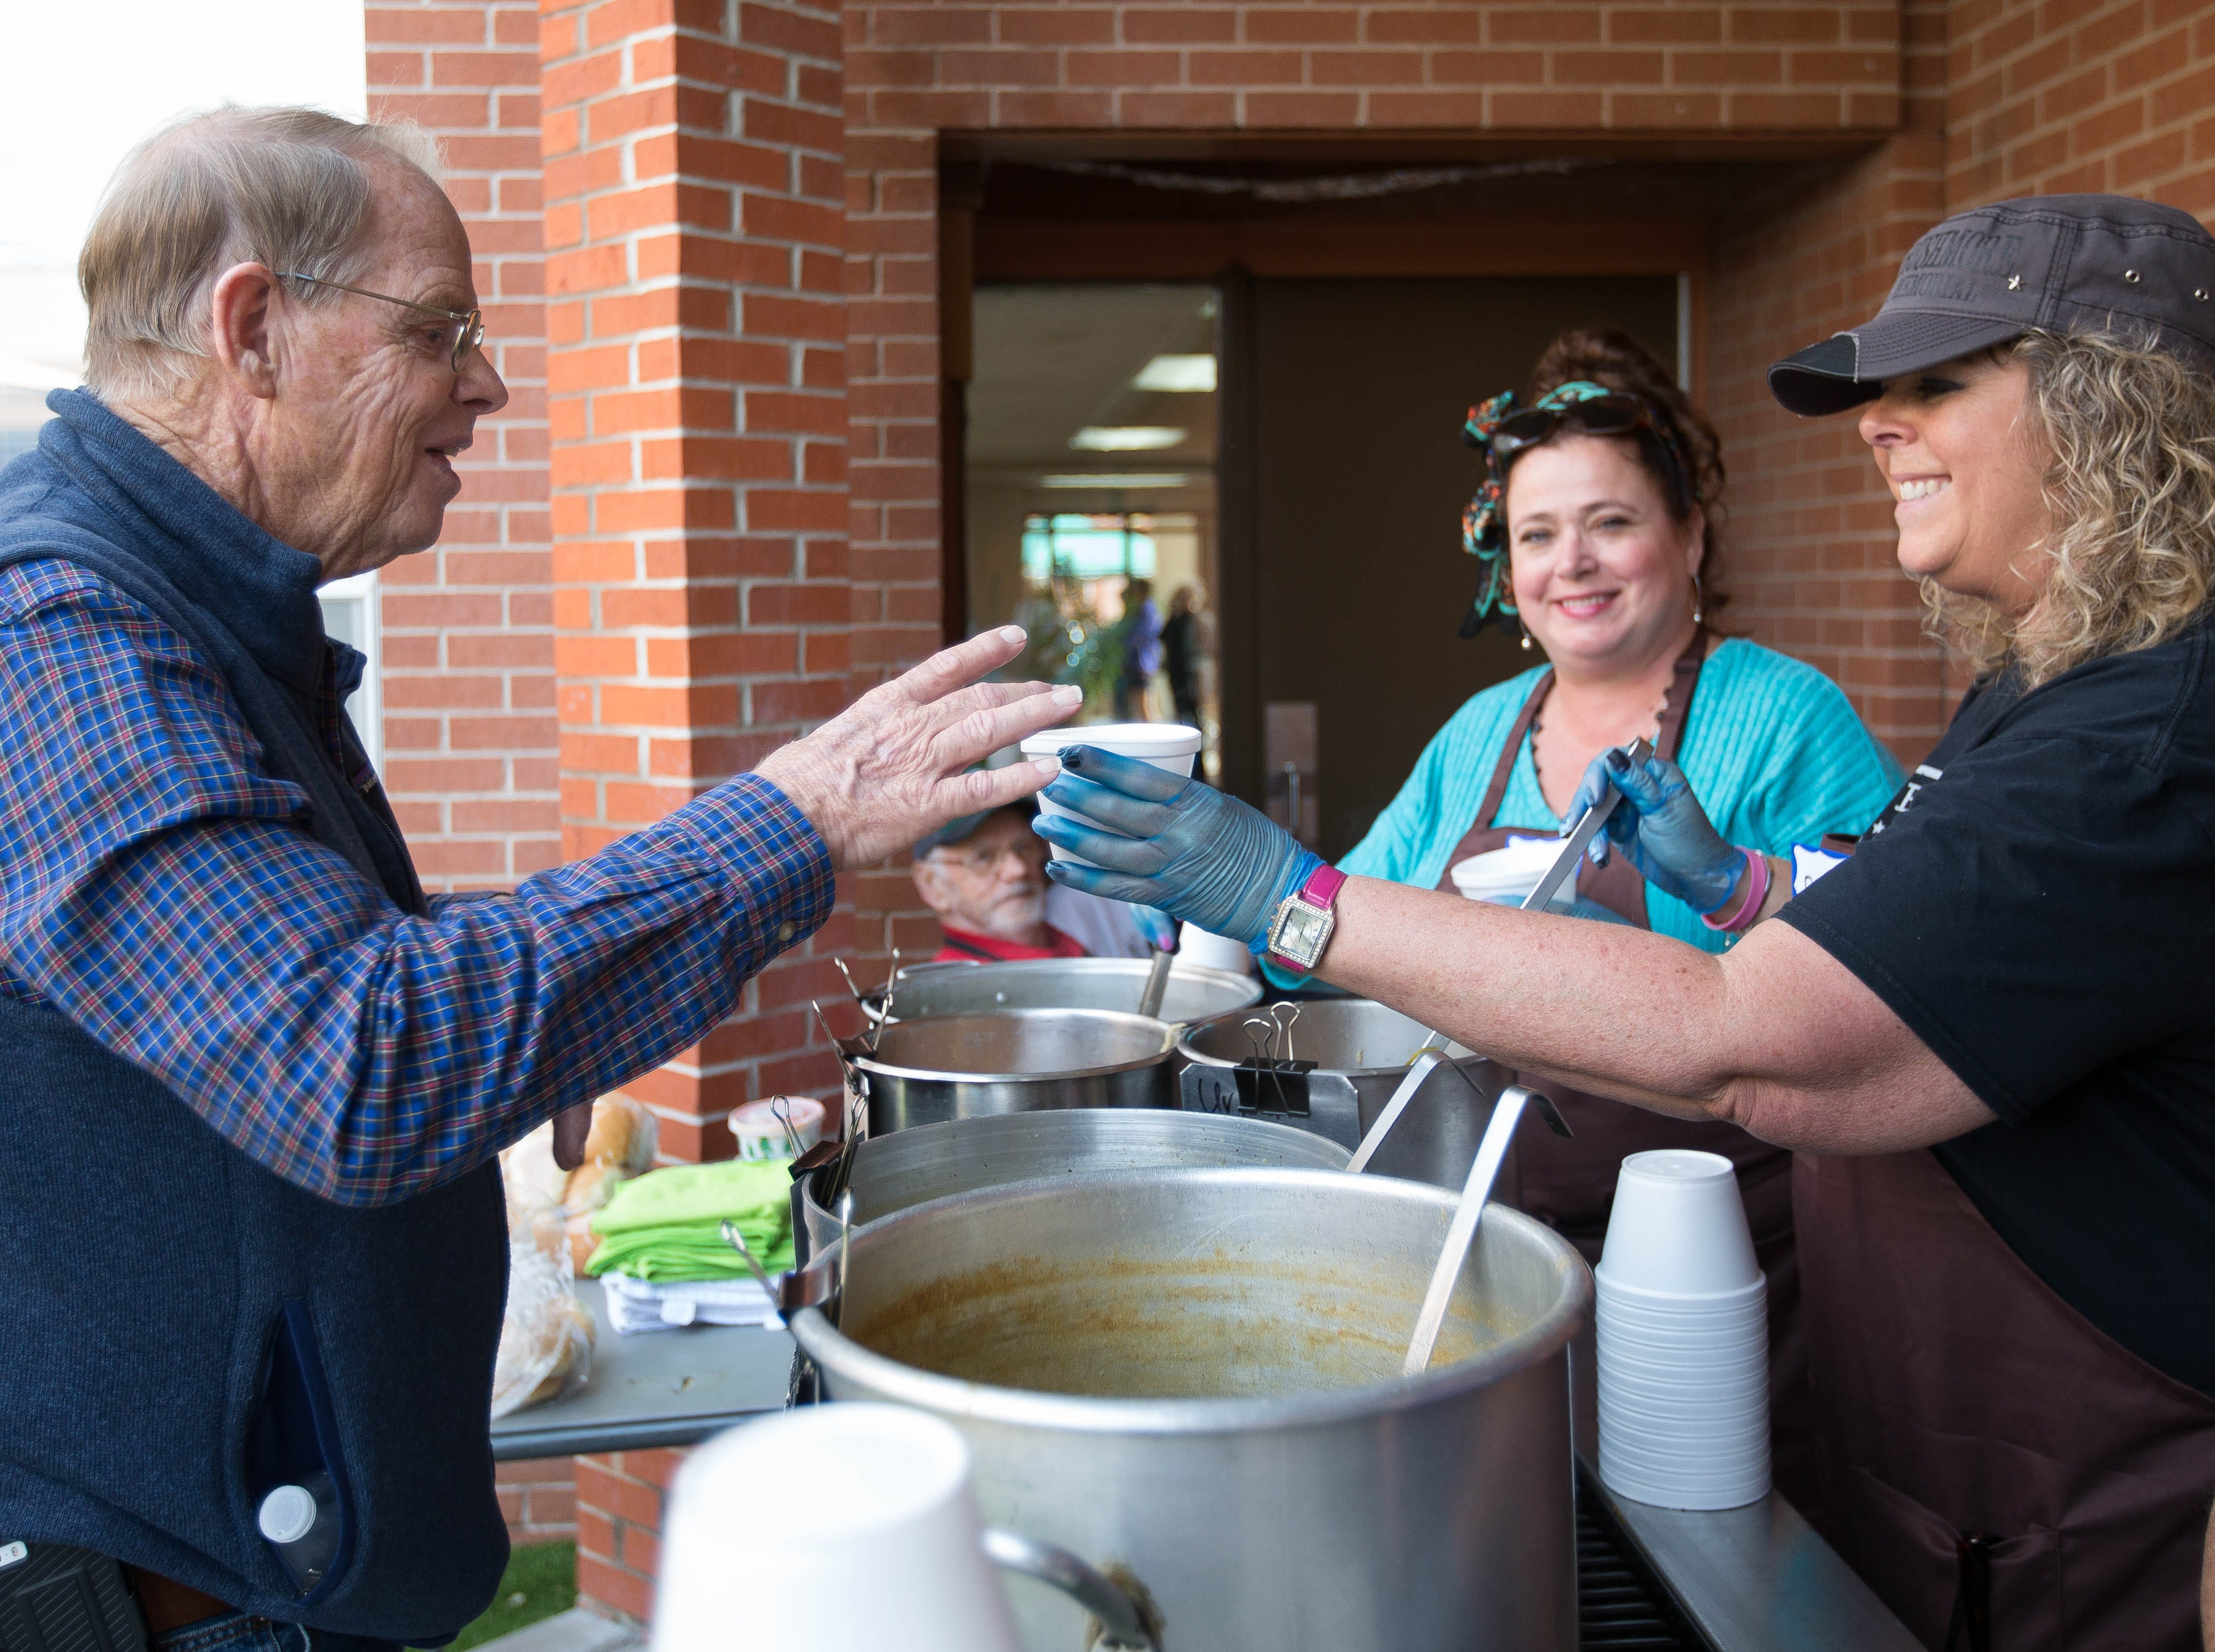 Delyce Maciel, right, hands a bowl of Chicken Caldo to Bill Seiffert, Friday October 19, 2018 during the El Caldito Soup Kitchen and Potters'  Guild of Las Cruces' 26th Annual Empty Bowls event at St. Paul's Methodist Church.